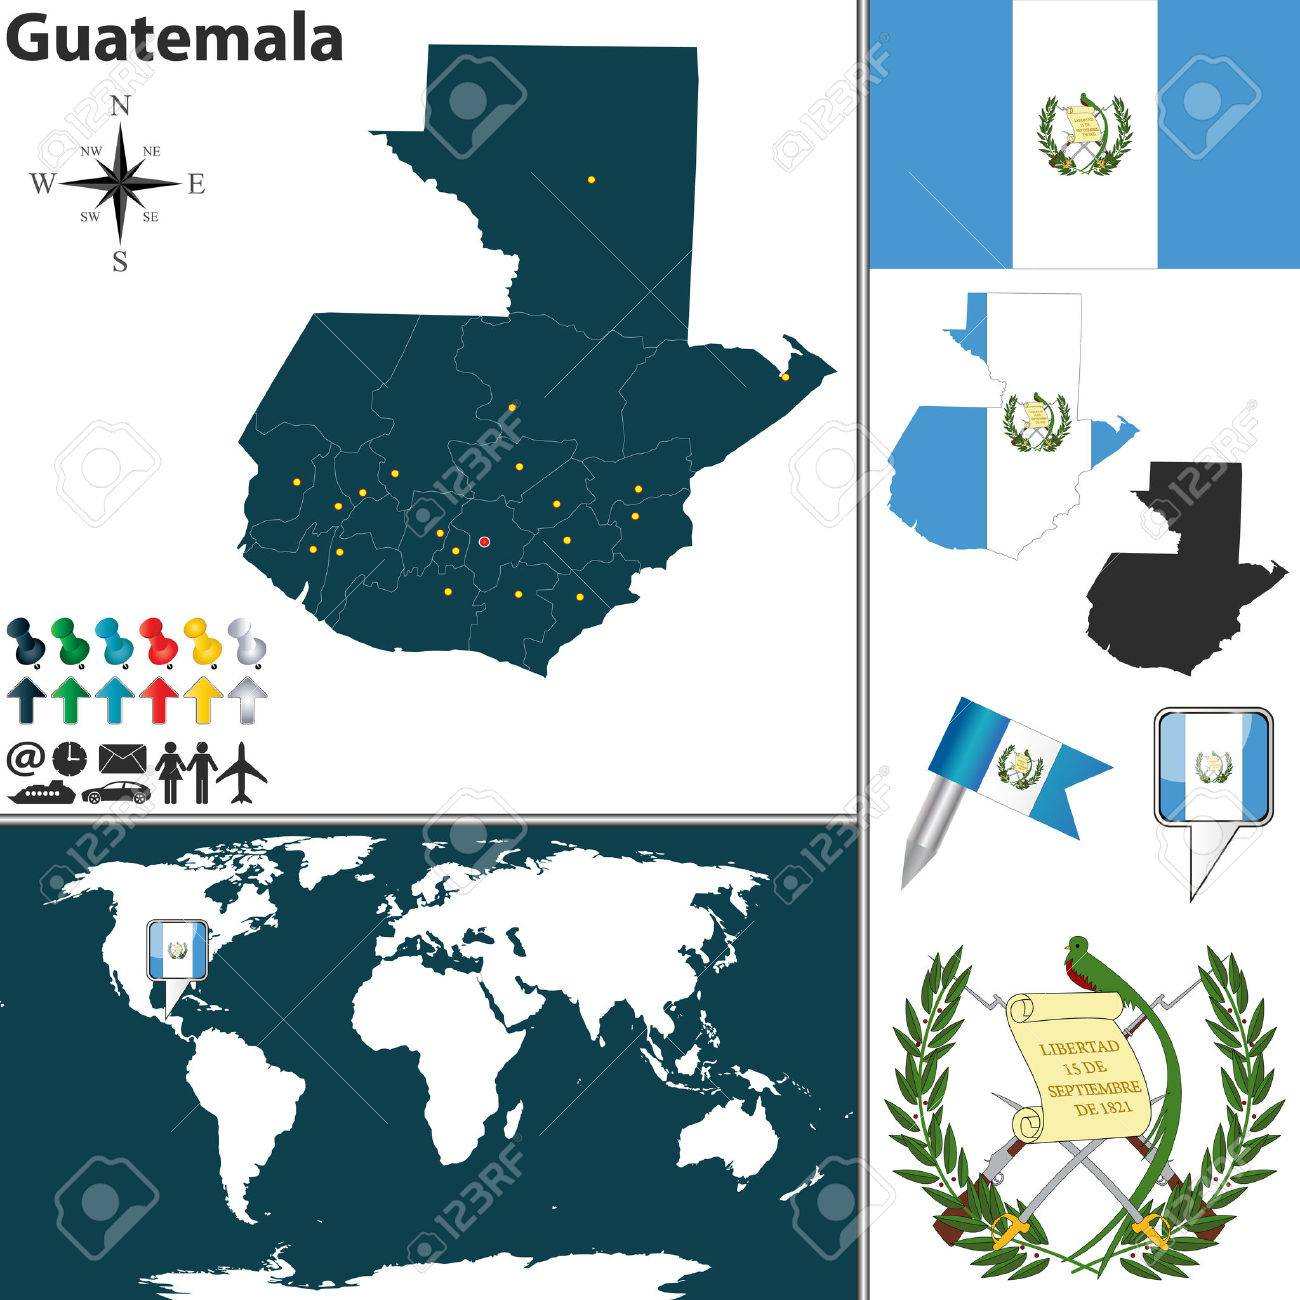 map of Guatemala with regions, coat of arms and location on world..